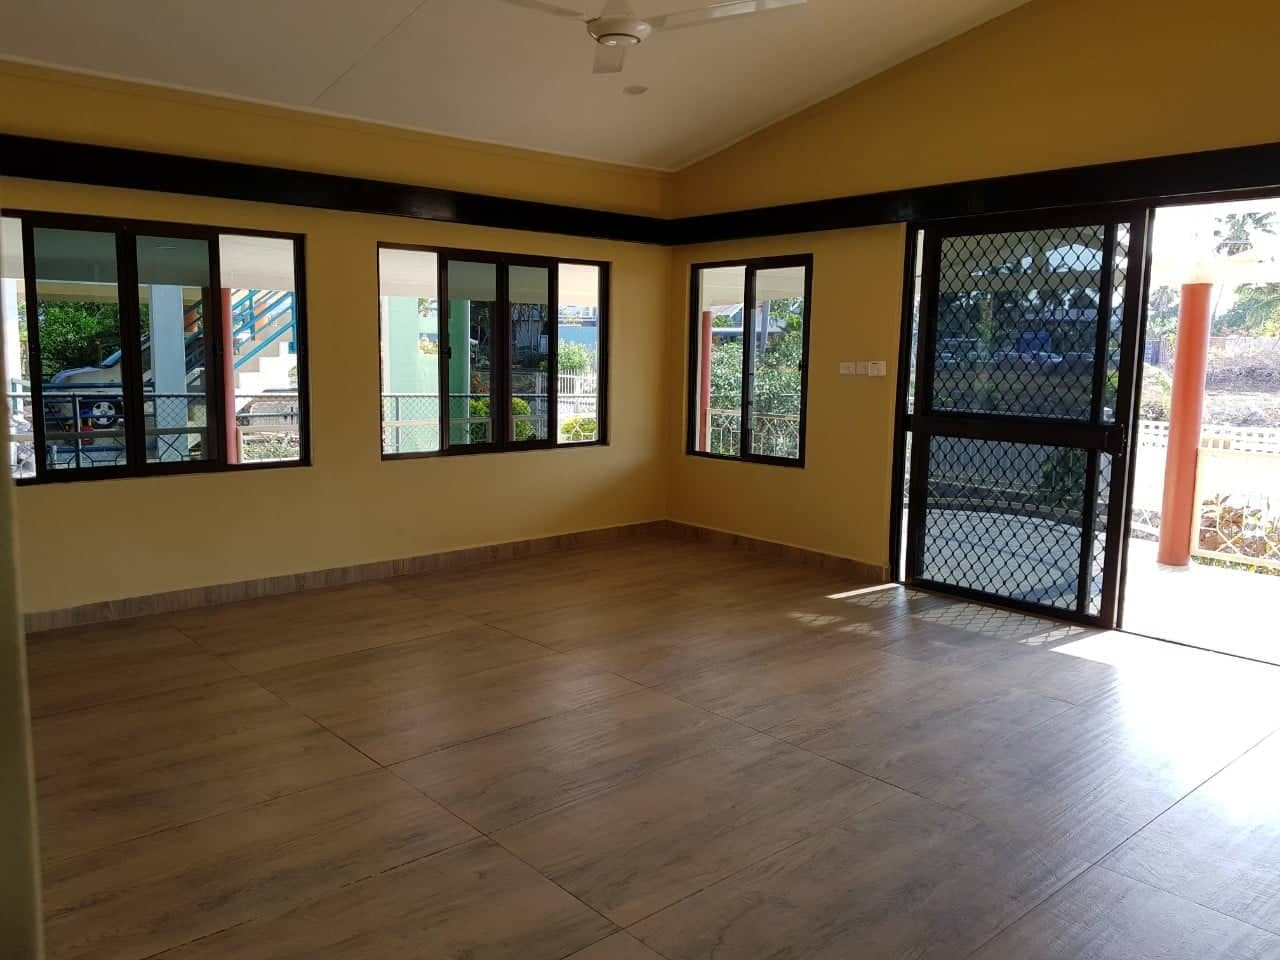 4 bedroom house on its own for rent